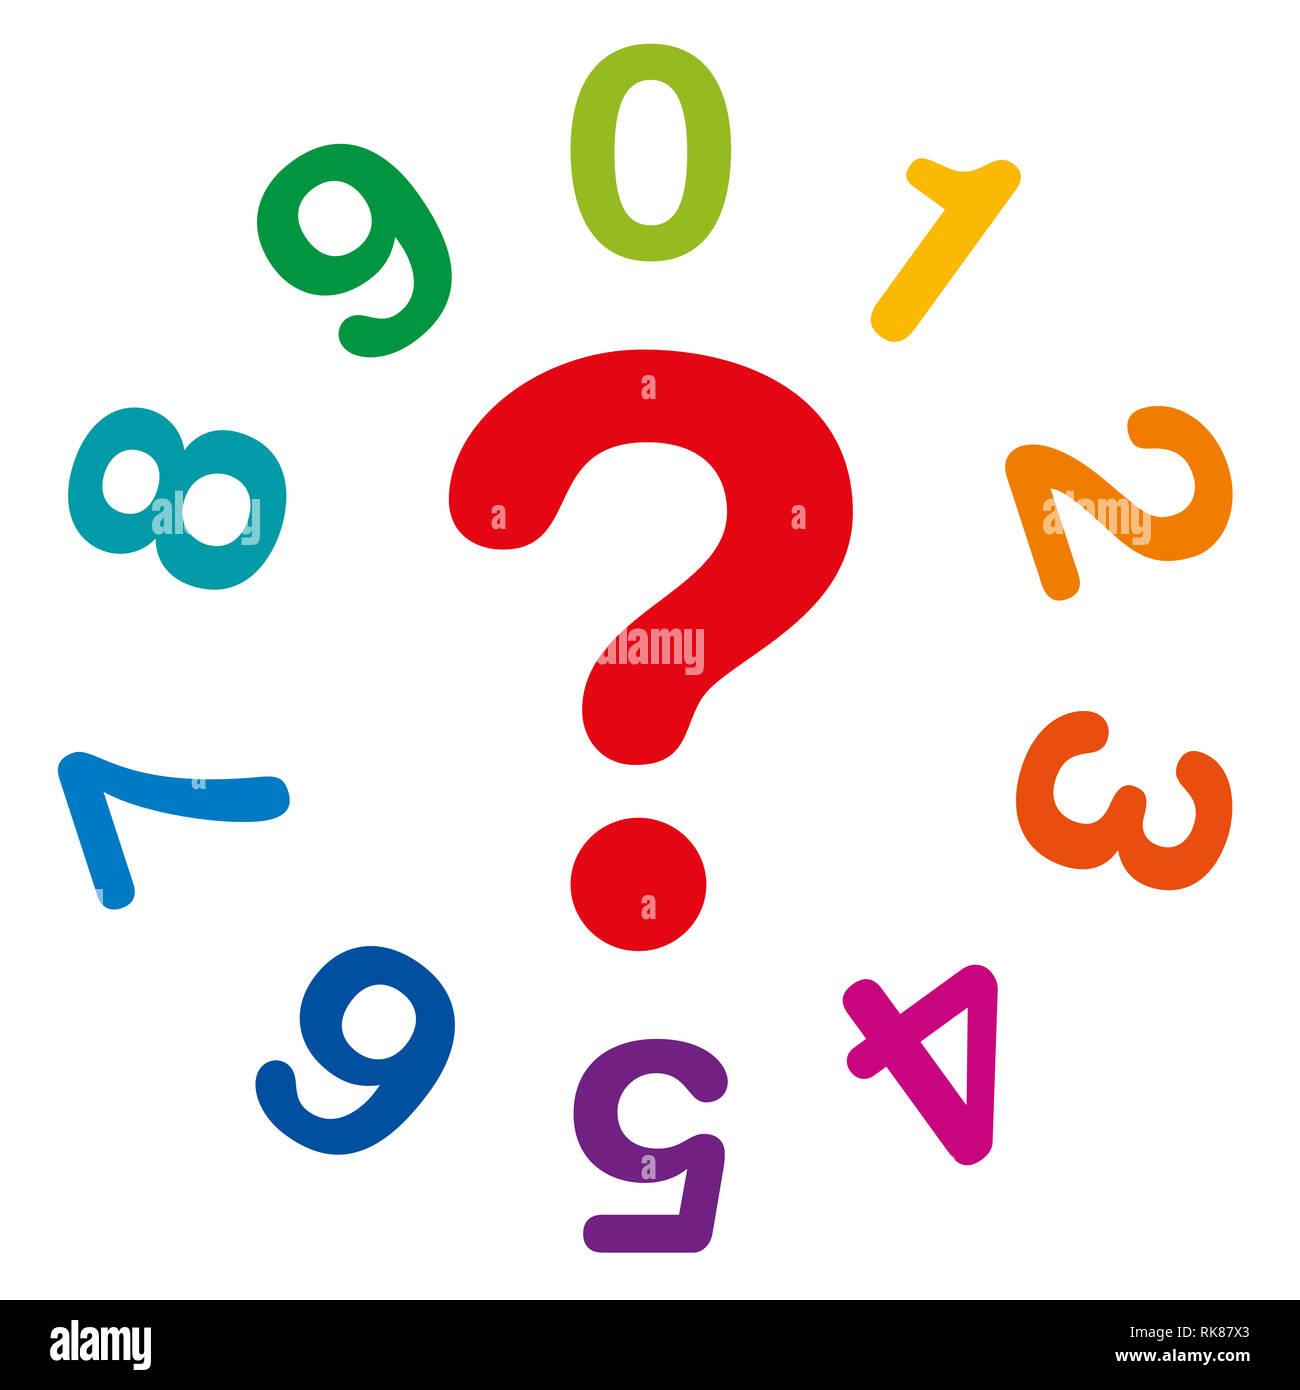 Ten rainbow colored numbers, from one to zero, forming a circle, with red question mark in the middle as symbol for numerology and fortune telling. - Stock Image